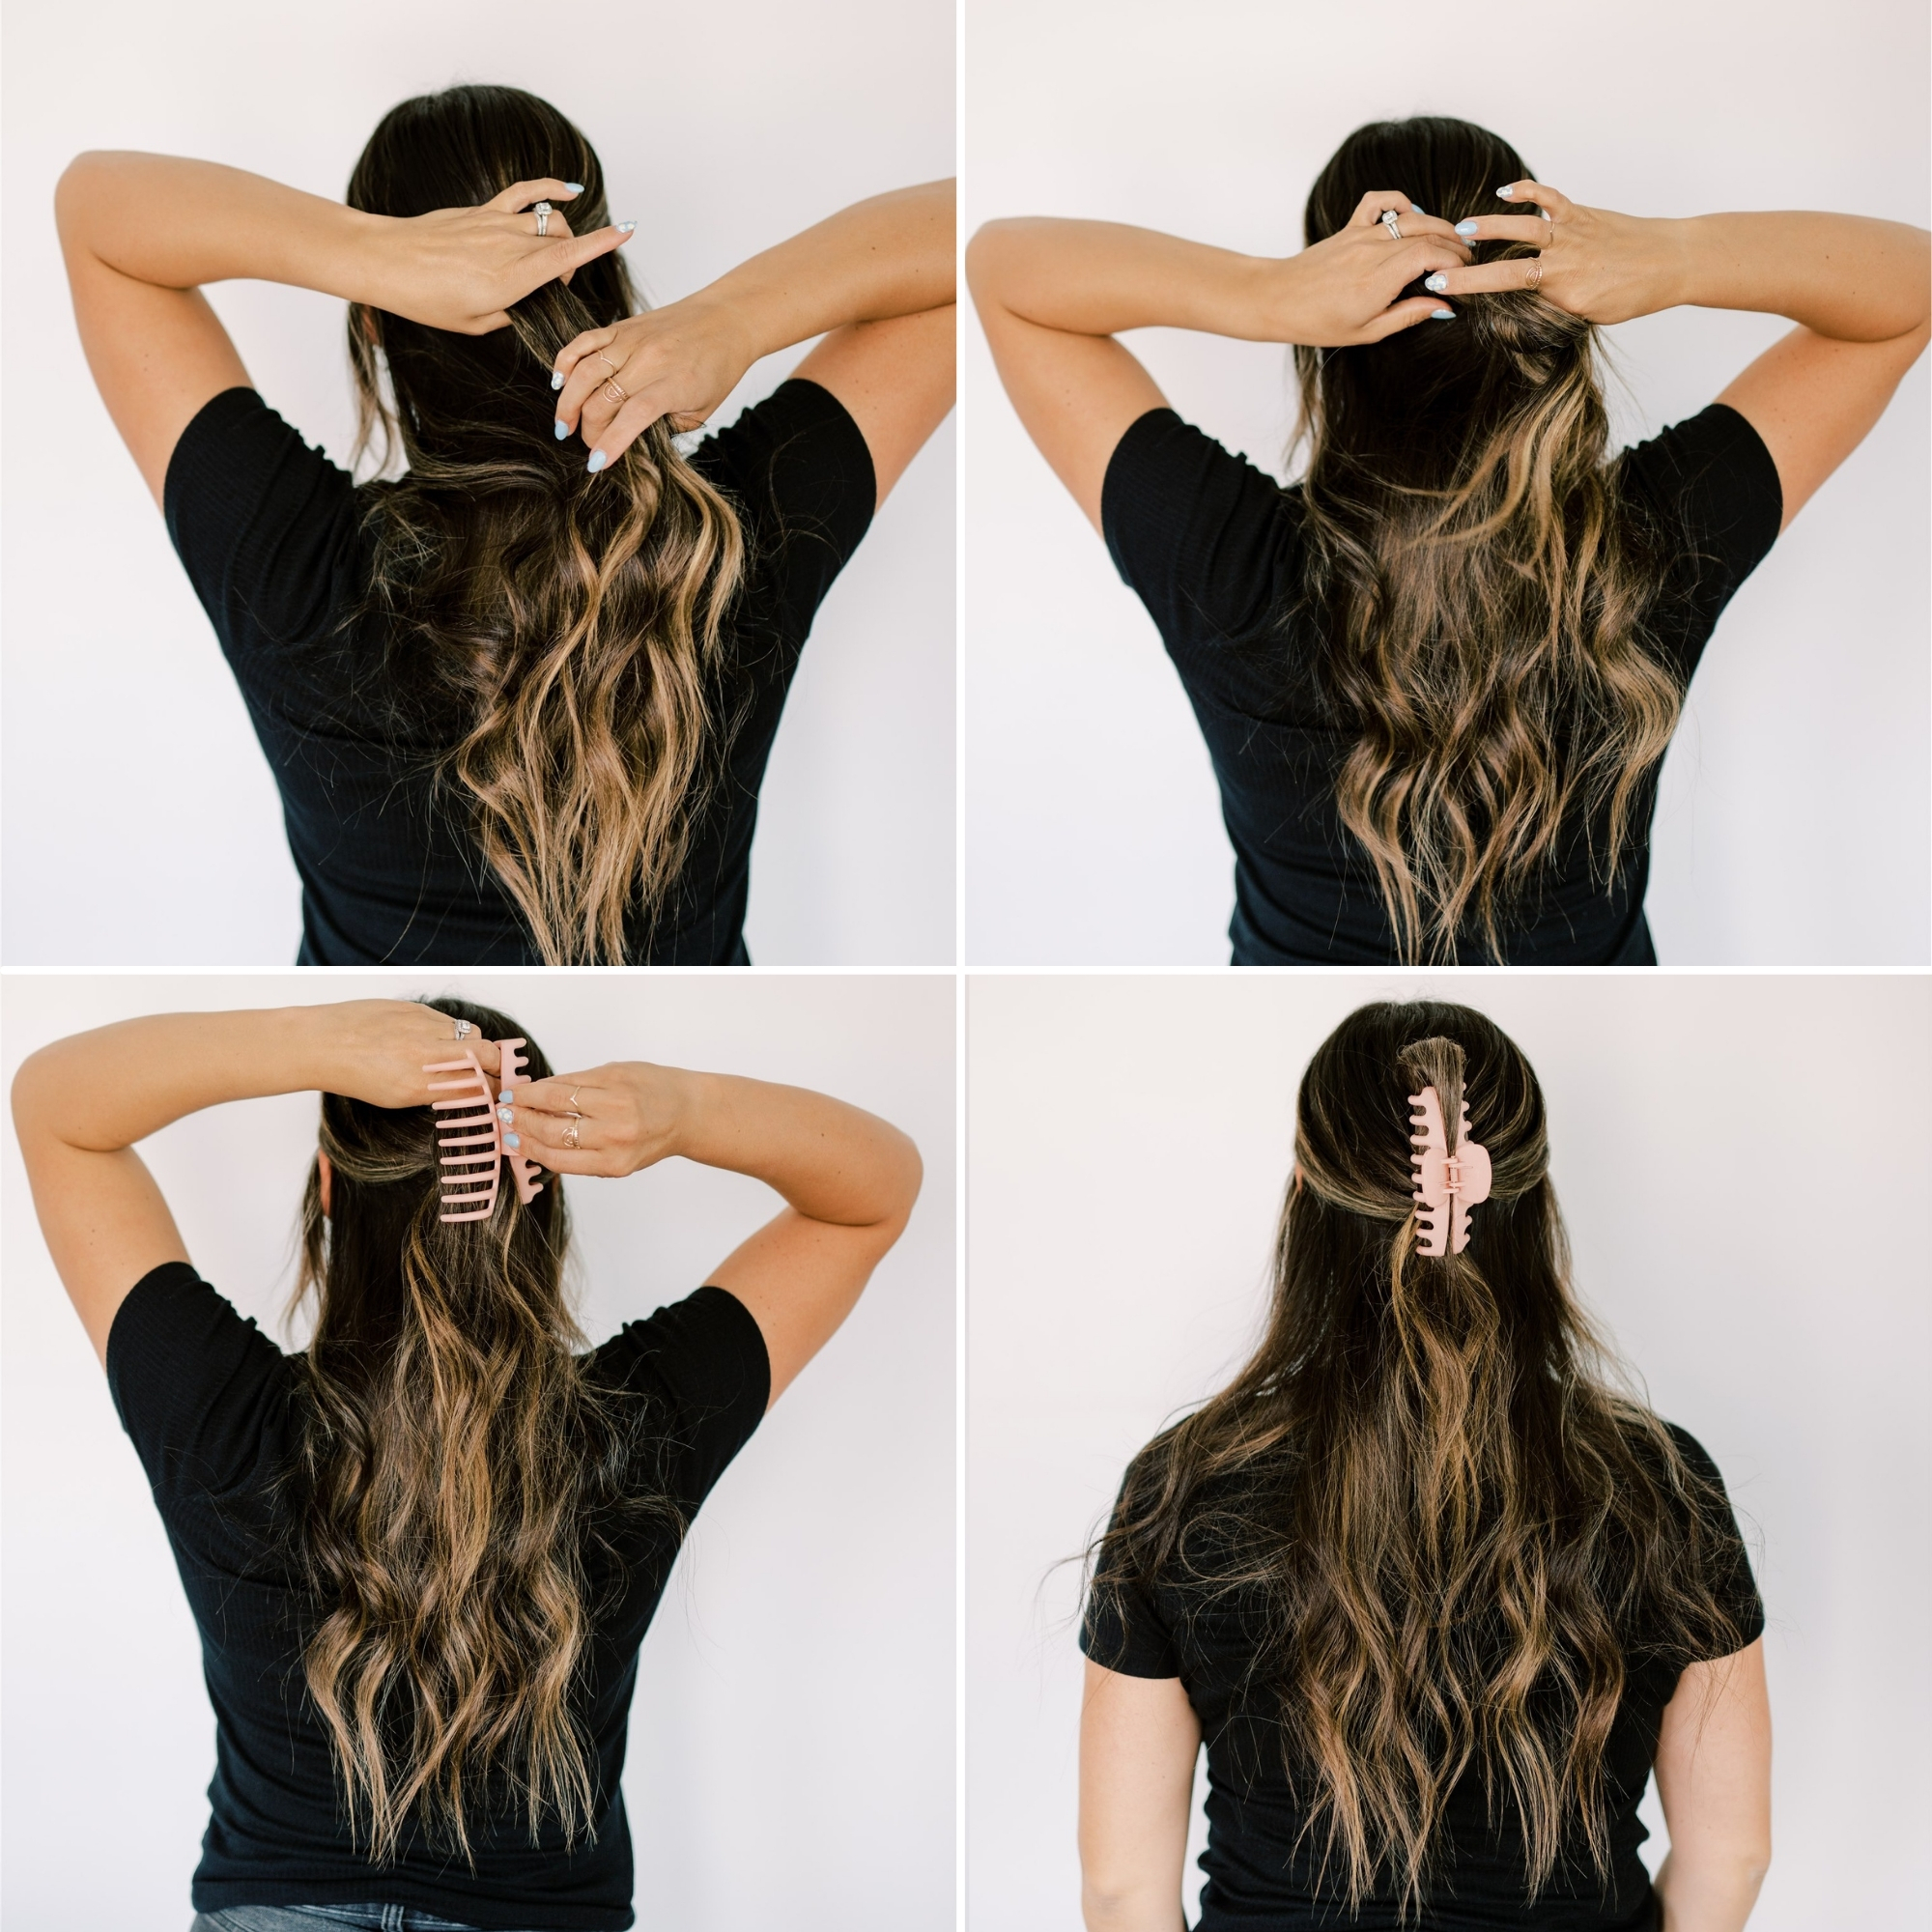 give your hair a little twist to help the claw clip stay in place. www.twistmepretty.com